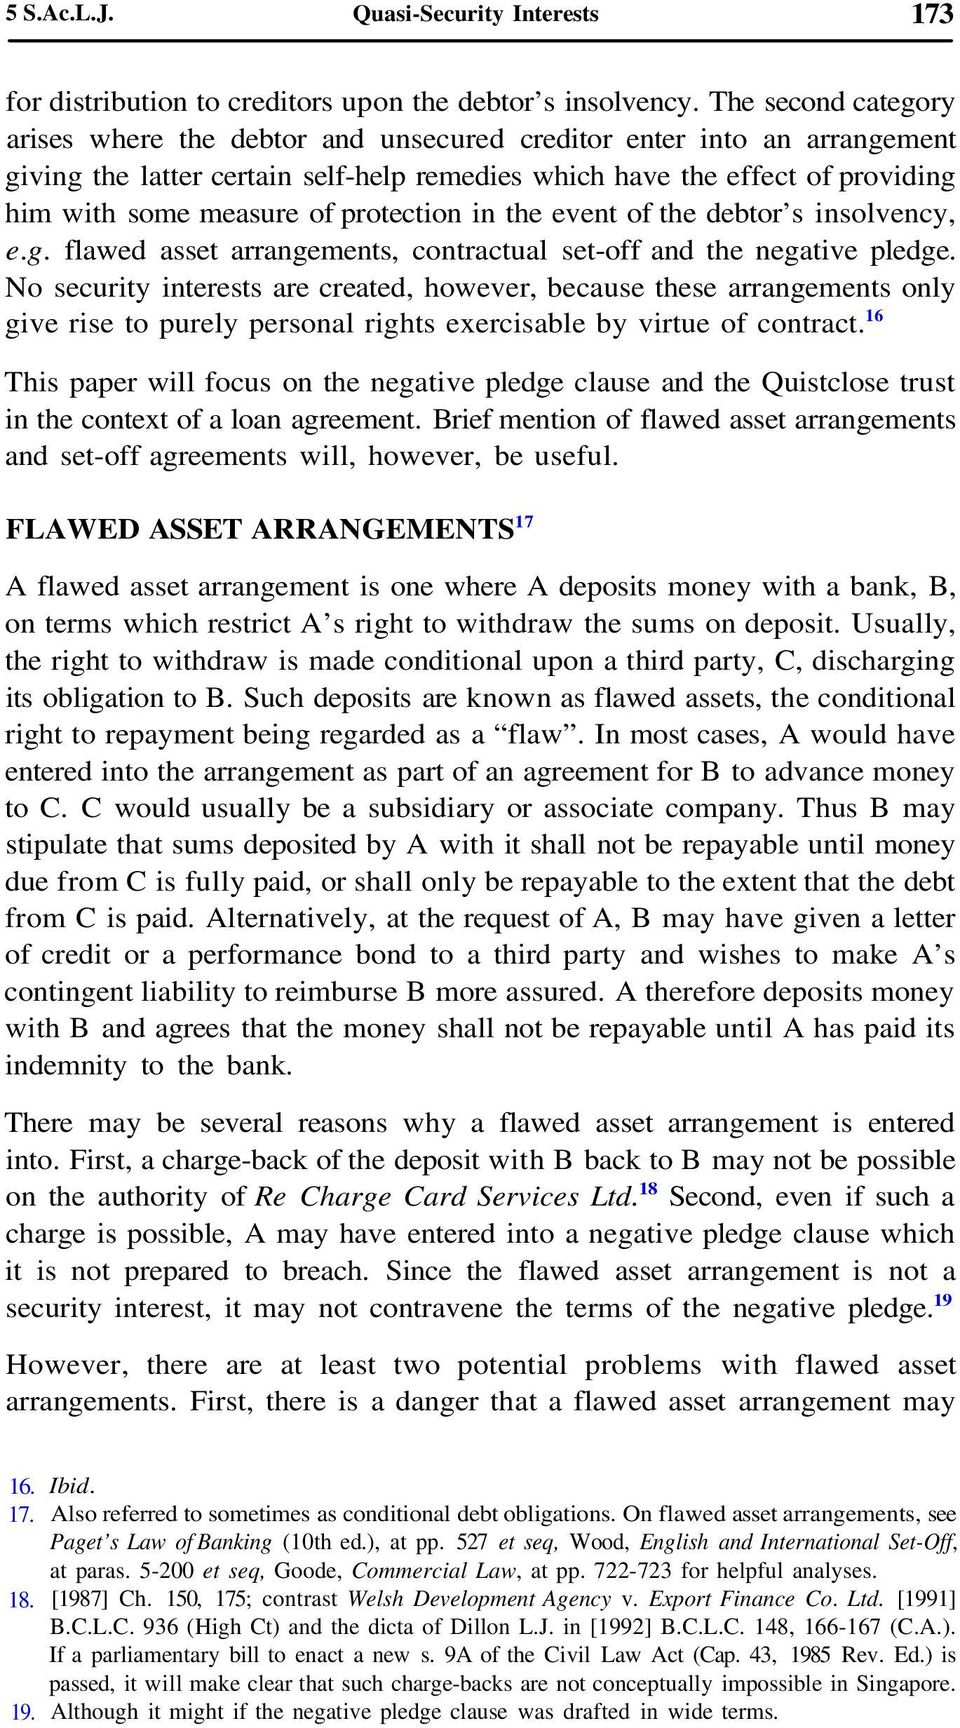 Quasi Security Interests In Loan Agreements An Overview 1 Pdf